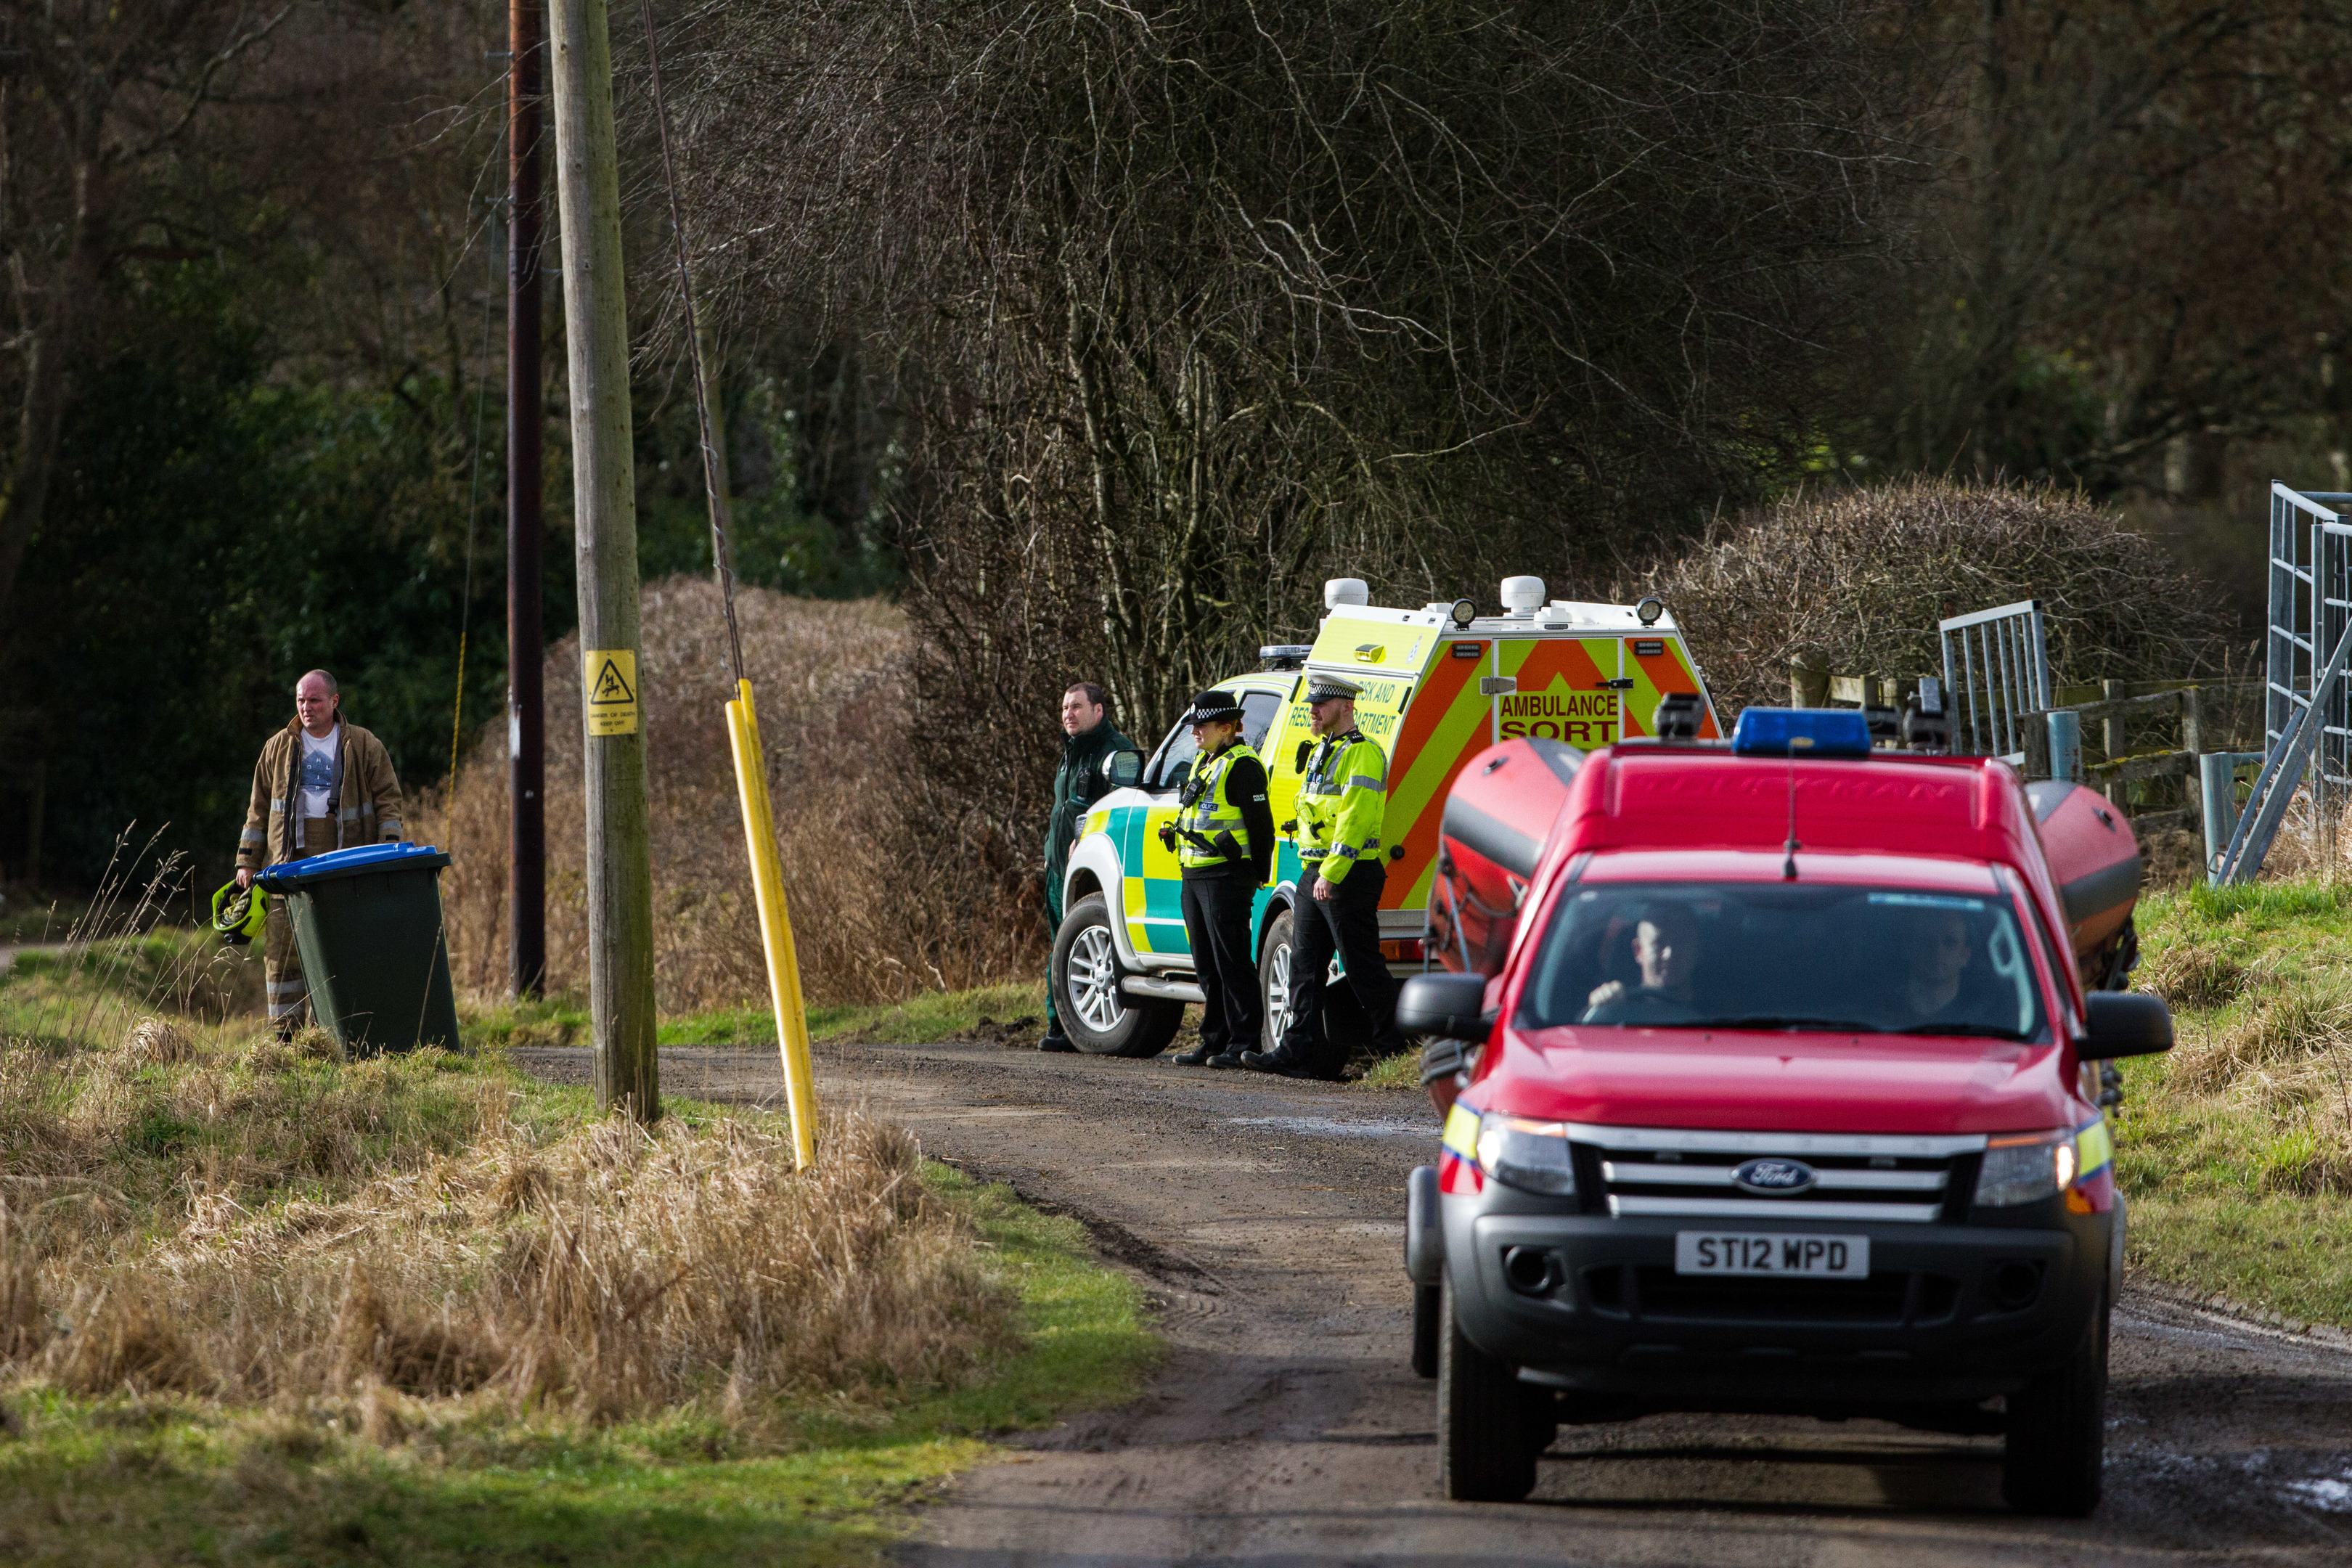 A search was launched to find the missing child